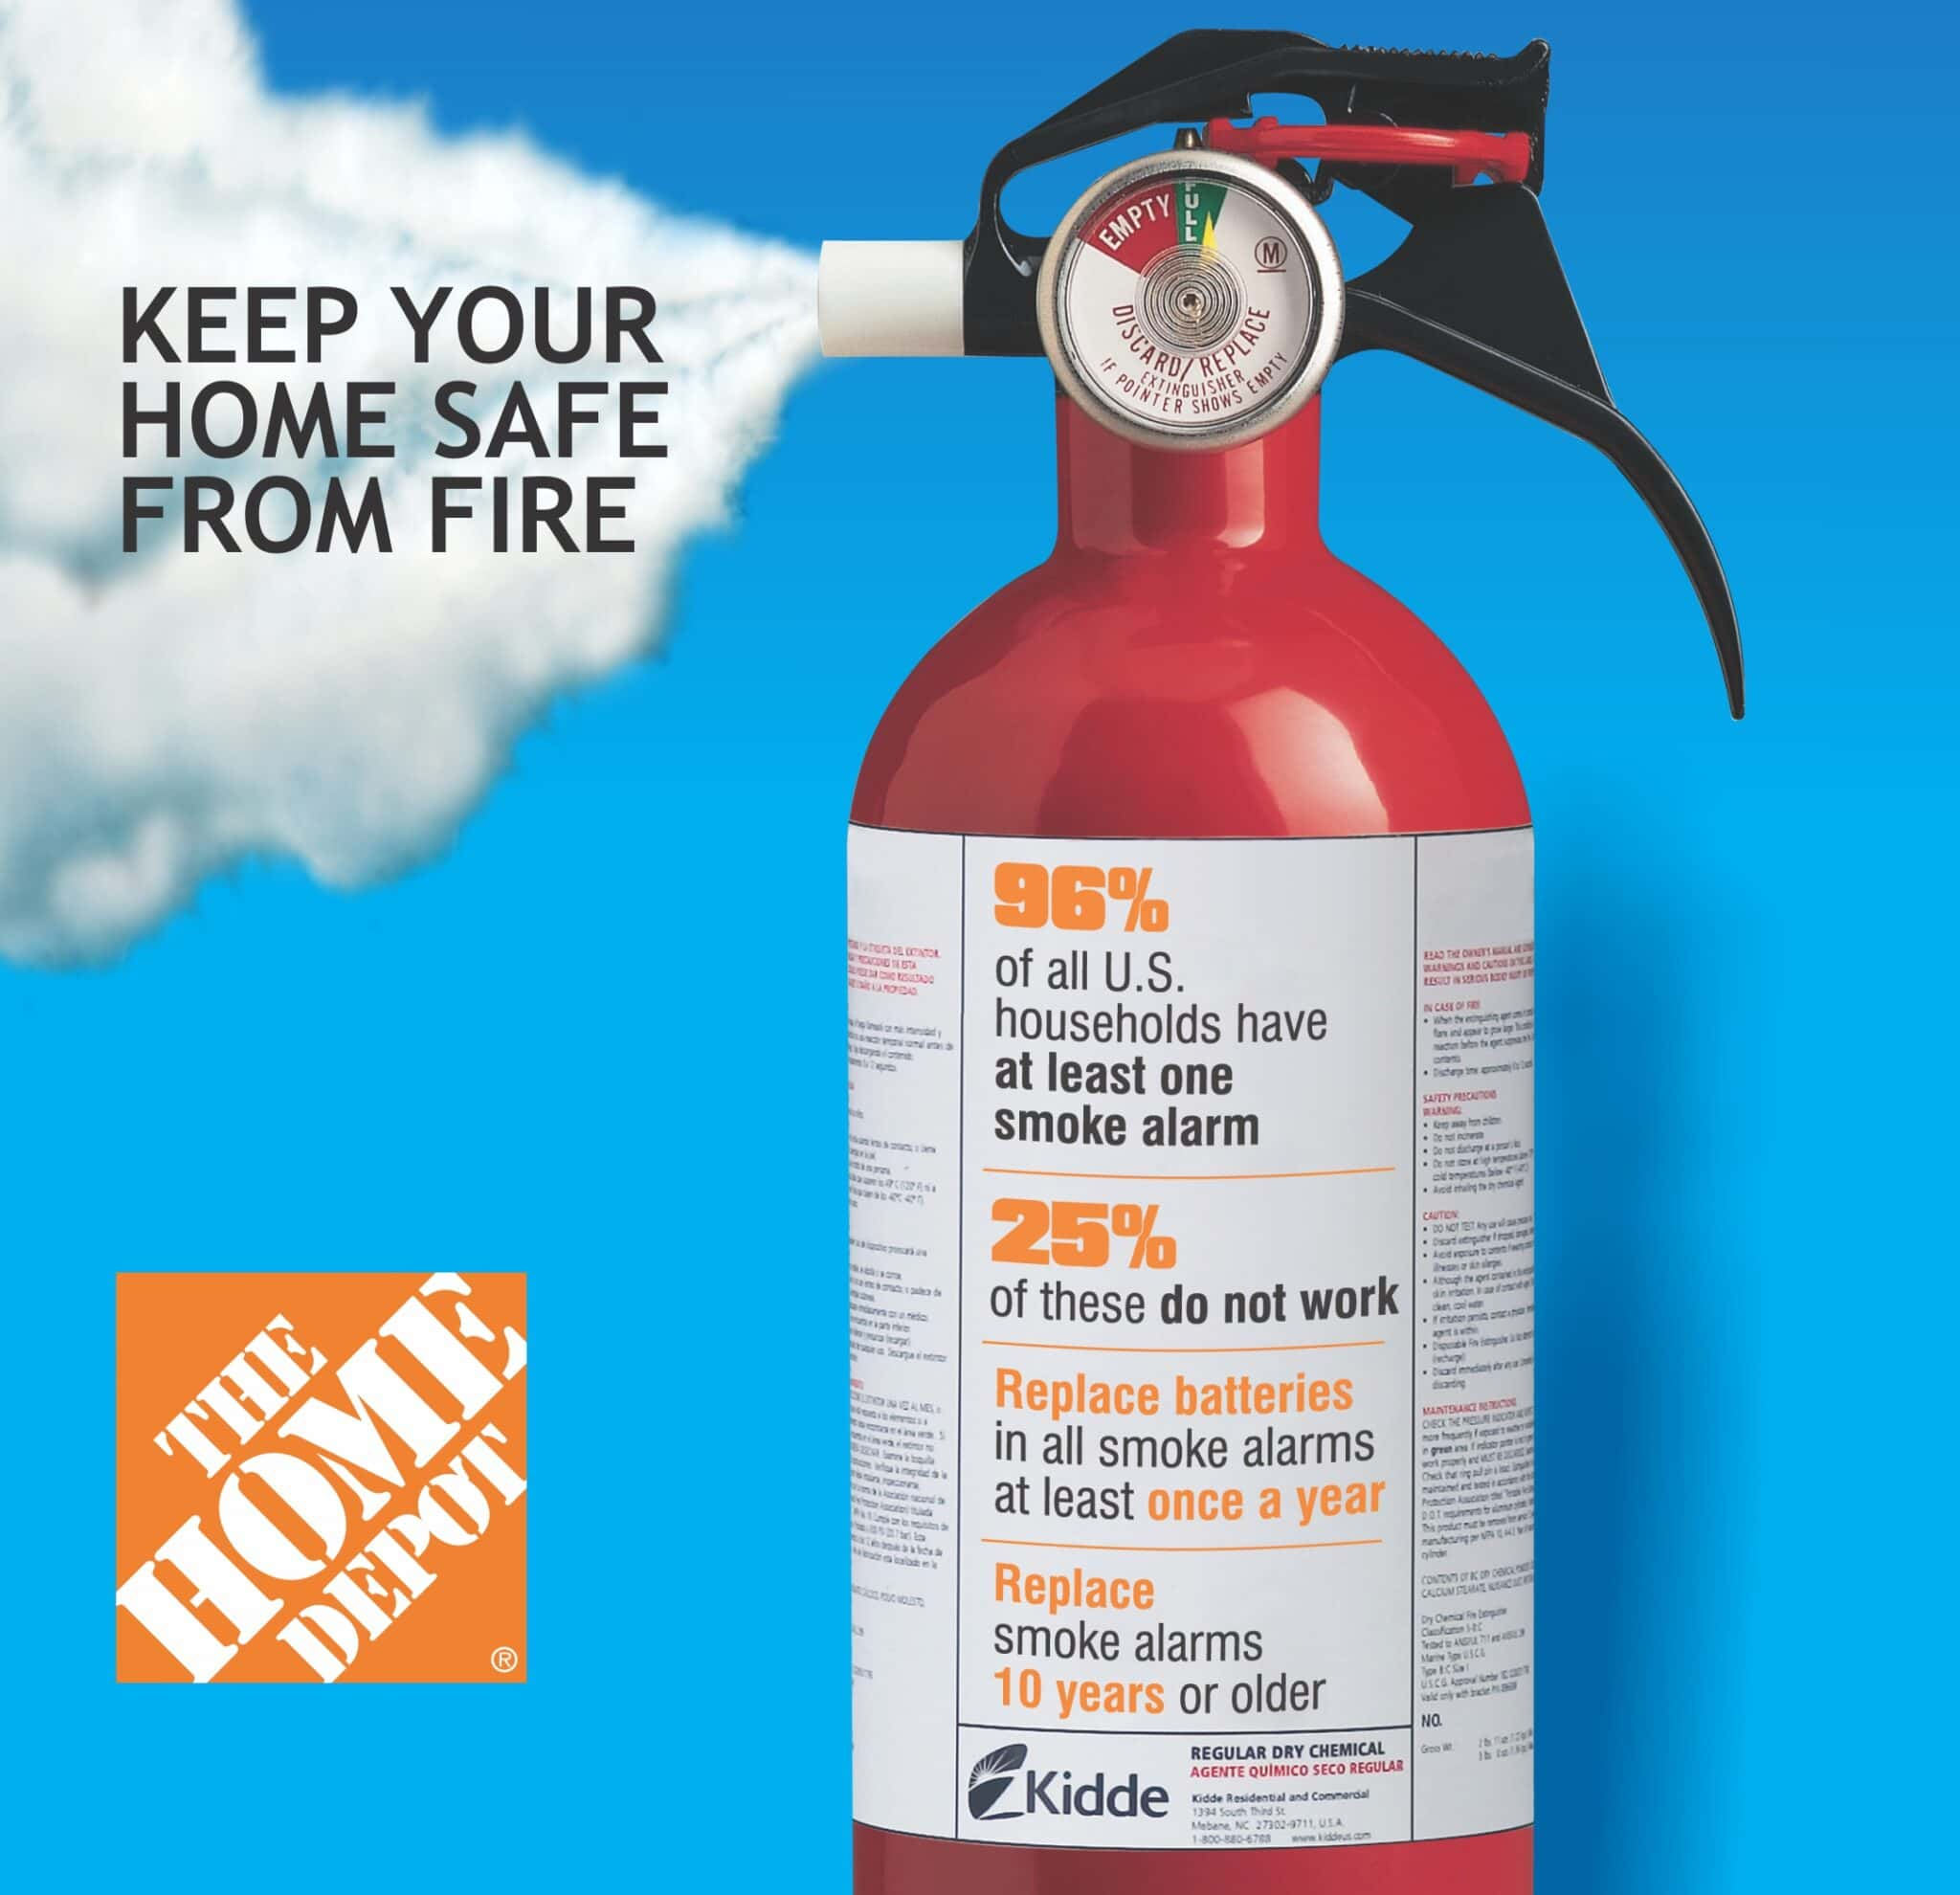 Home Depot Fire Safety Event Saturday December 1st $50 Home